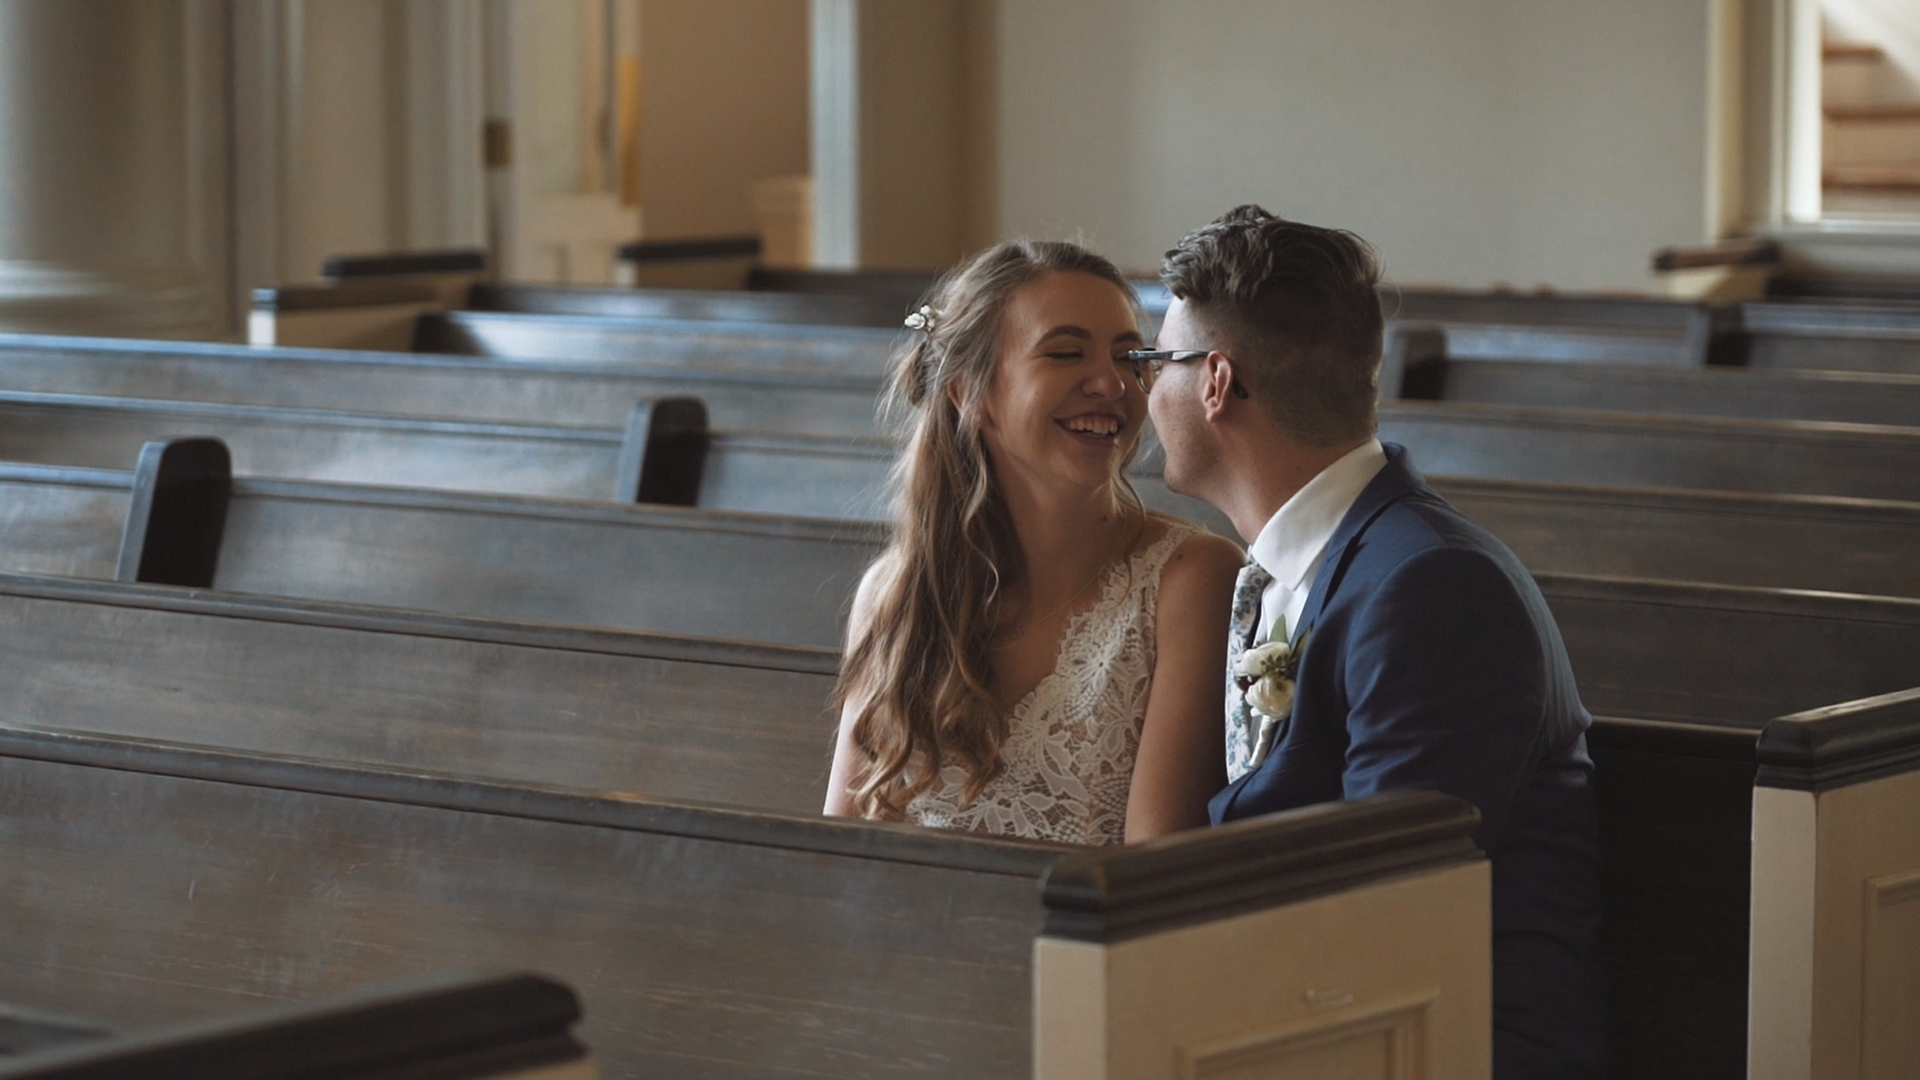 Carlie + Caleb | Denver, Colorado | Park Church